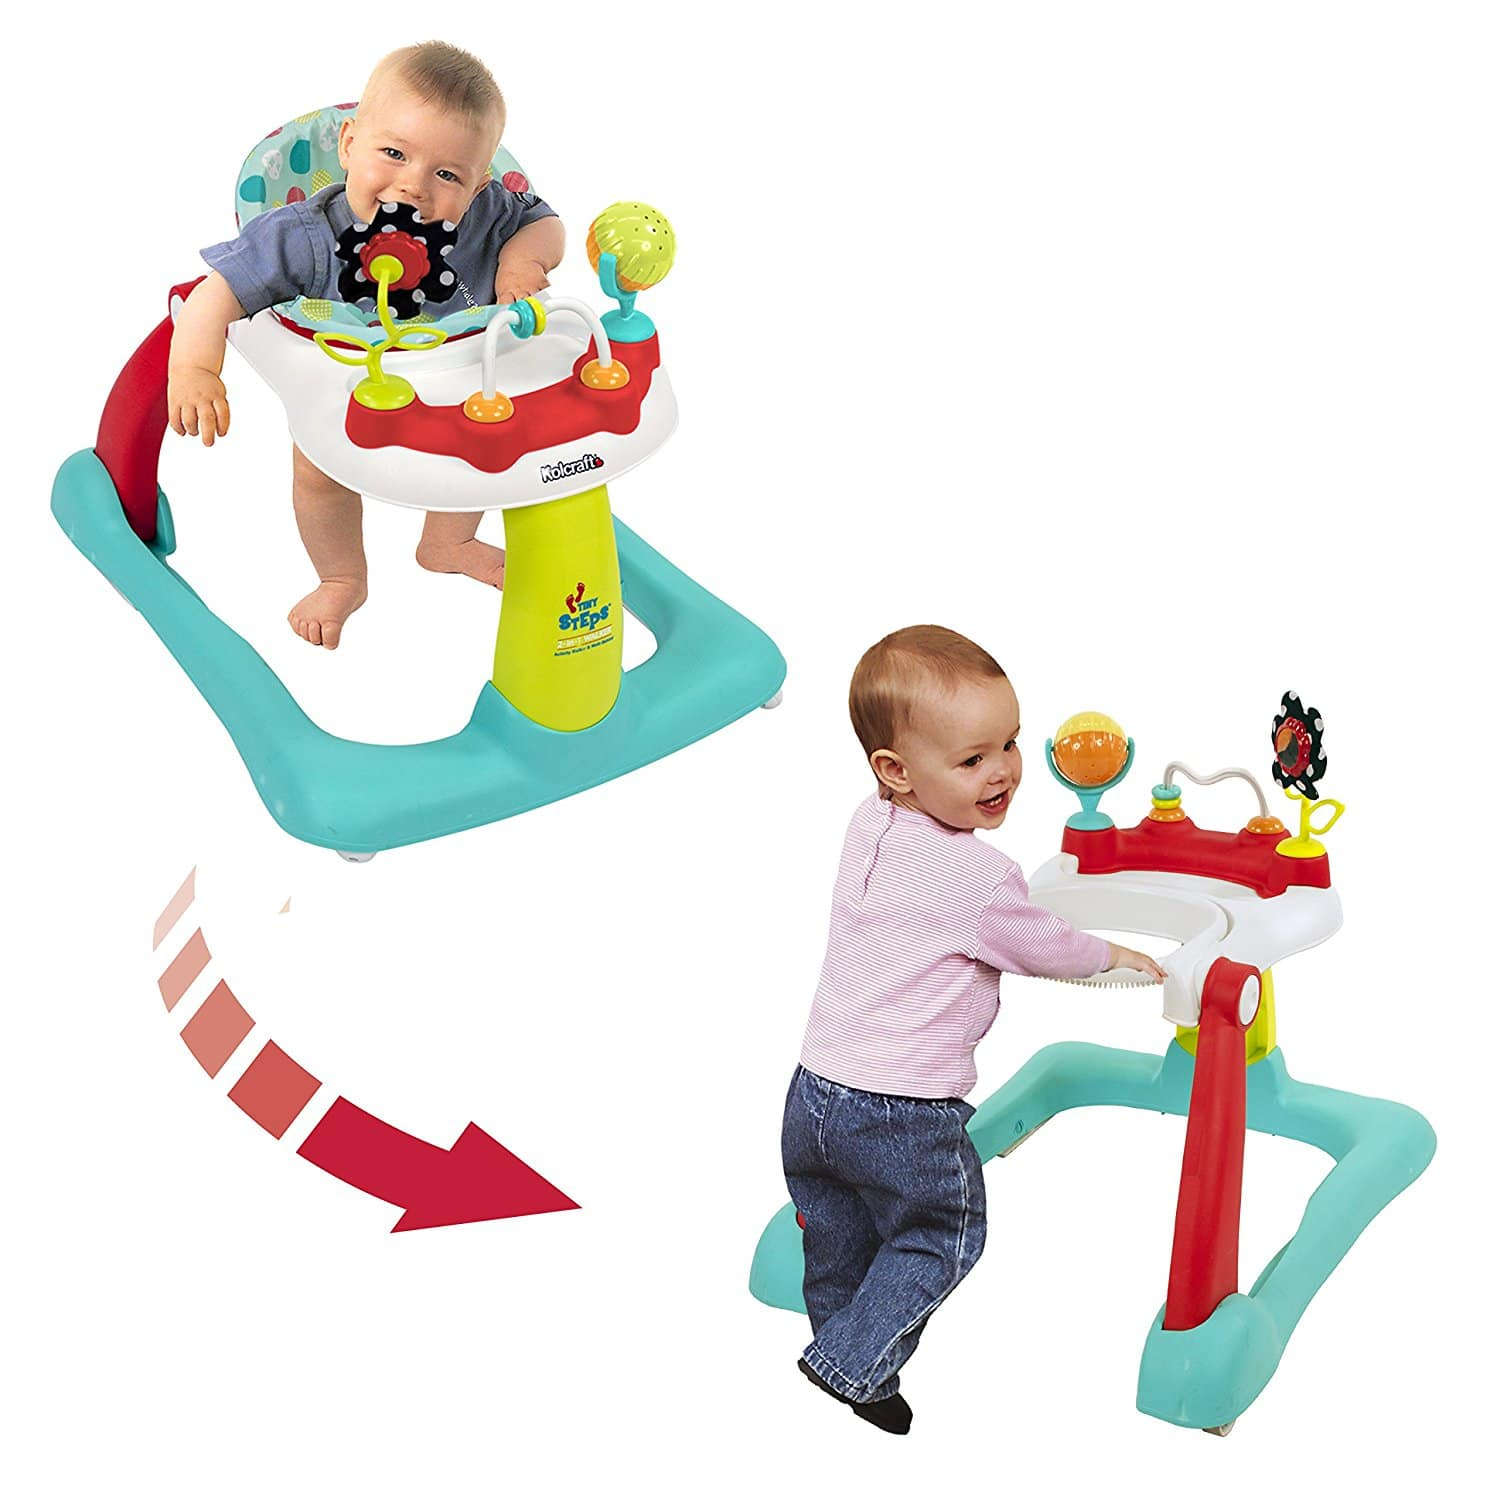 Kolcraft Tiny Steps 2-in-1 Activity Walker – Best 2-in-1 Baby Walker